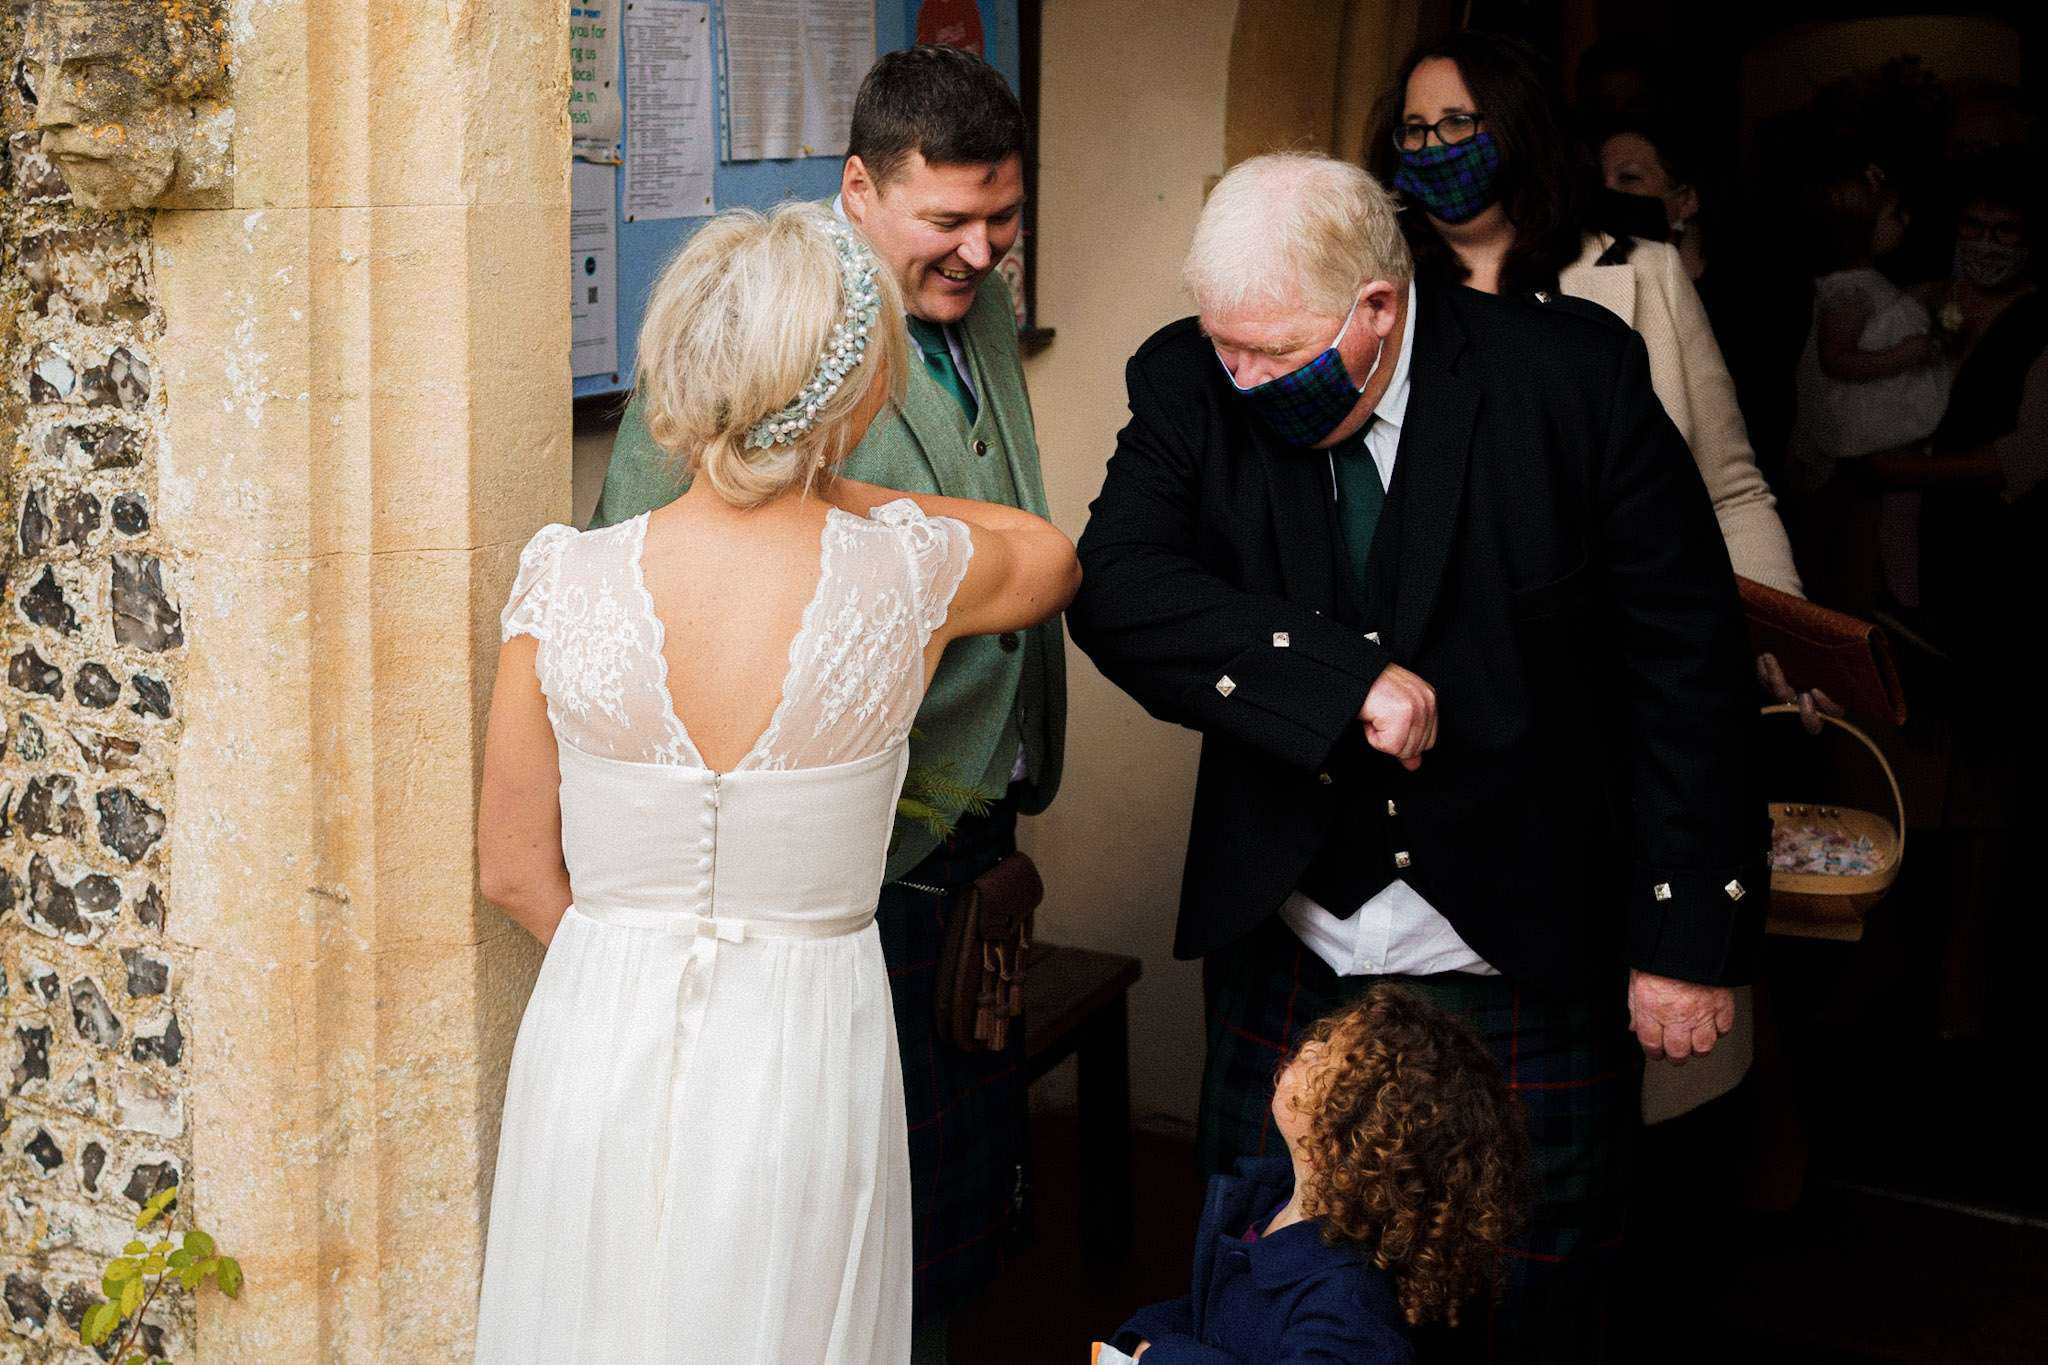 A Covid-19 safe greeting between a bride and her guests